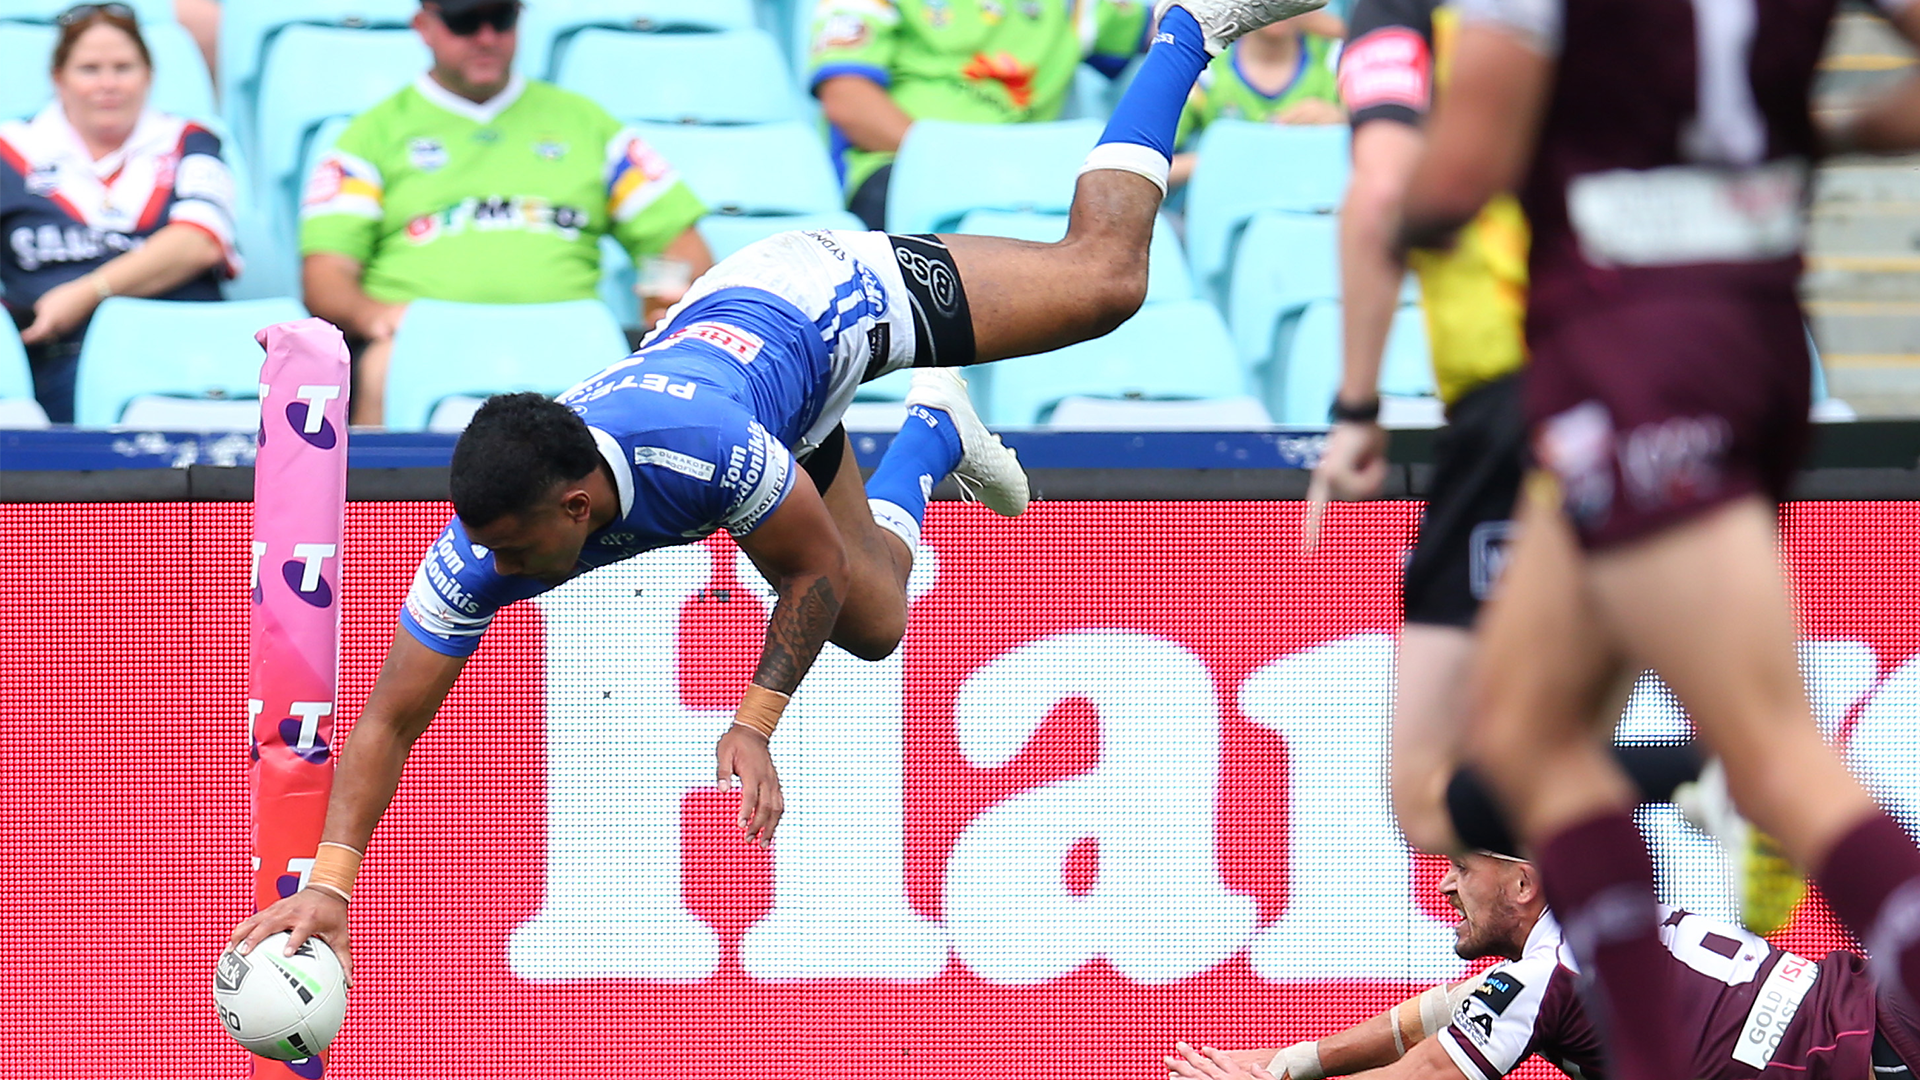 Sione Katoa on the 'instinct' behind his acrobatic finishes